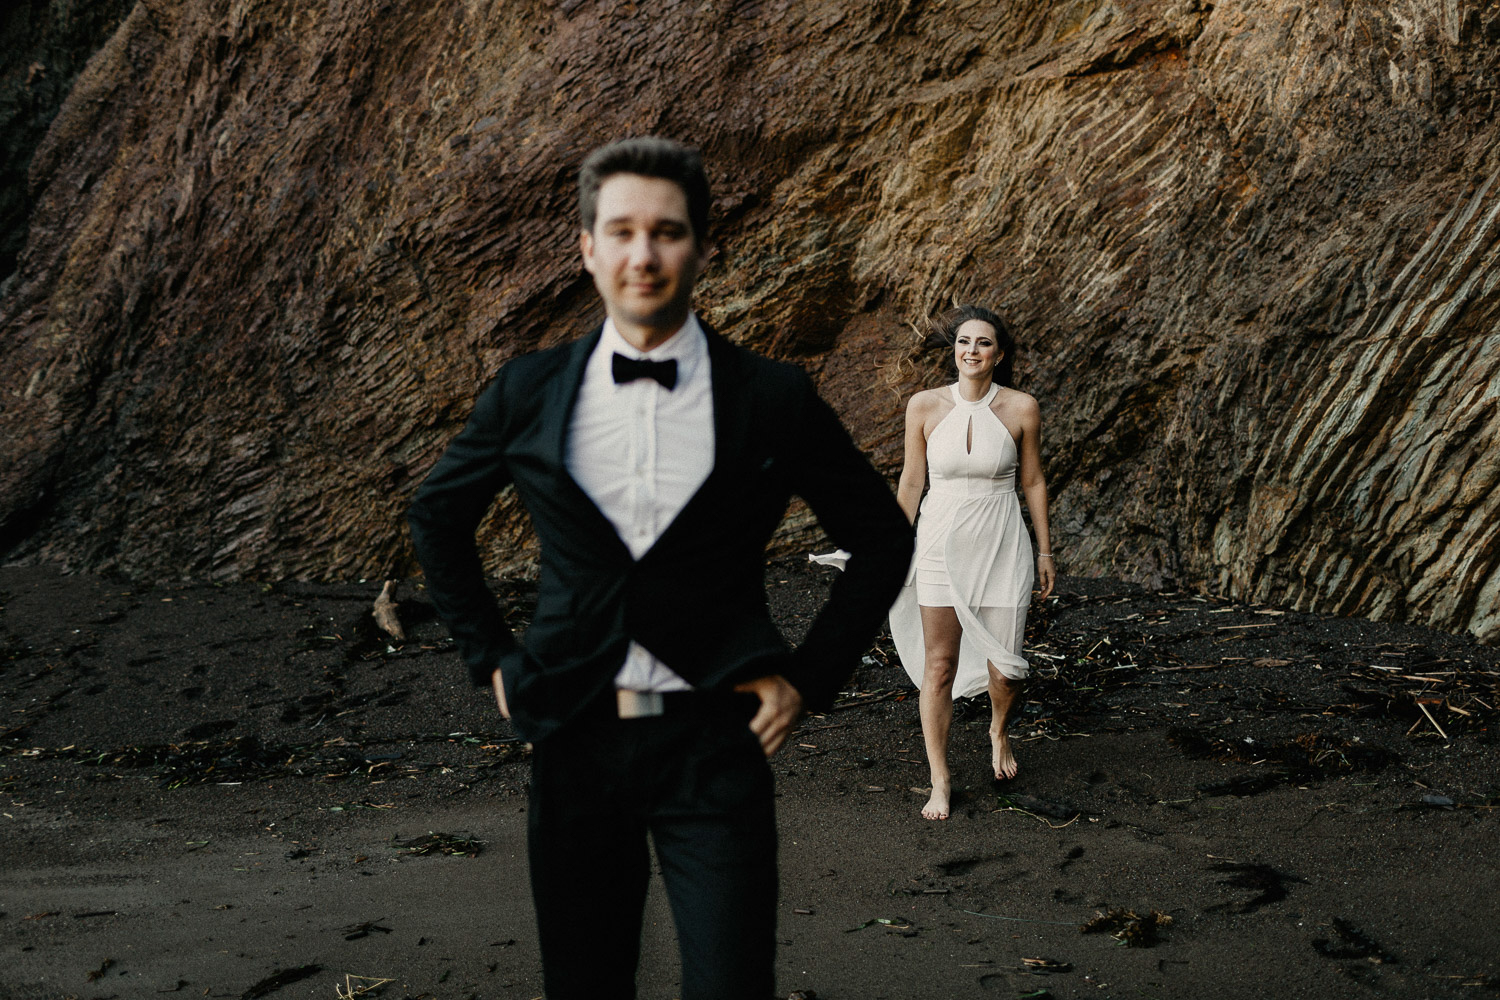 Image of groom stands in front of bride on beach